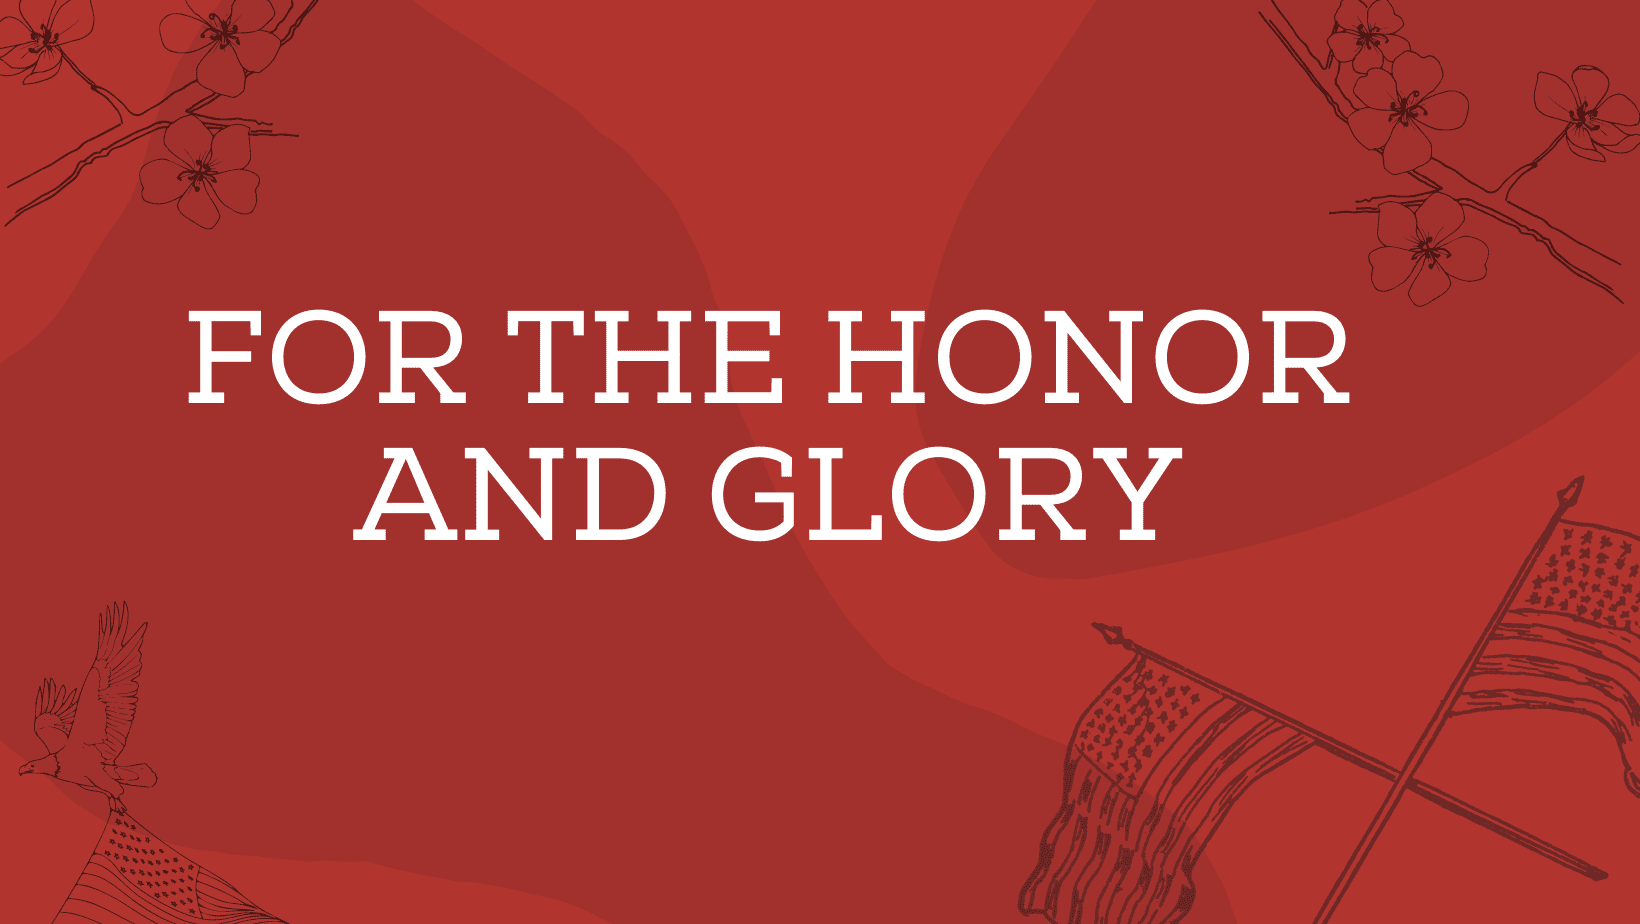 For the Honor and Glory